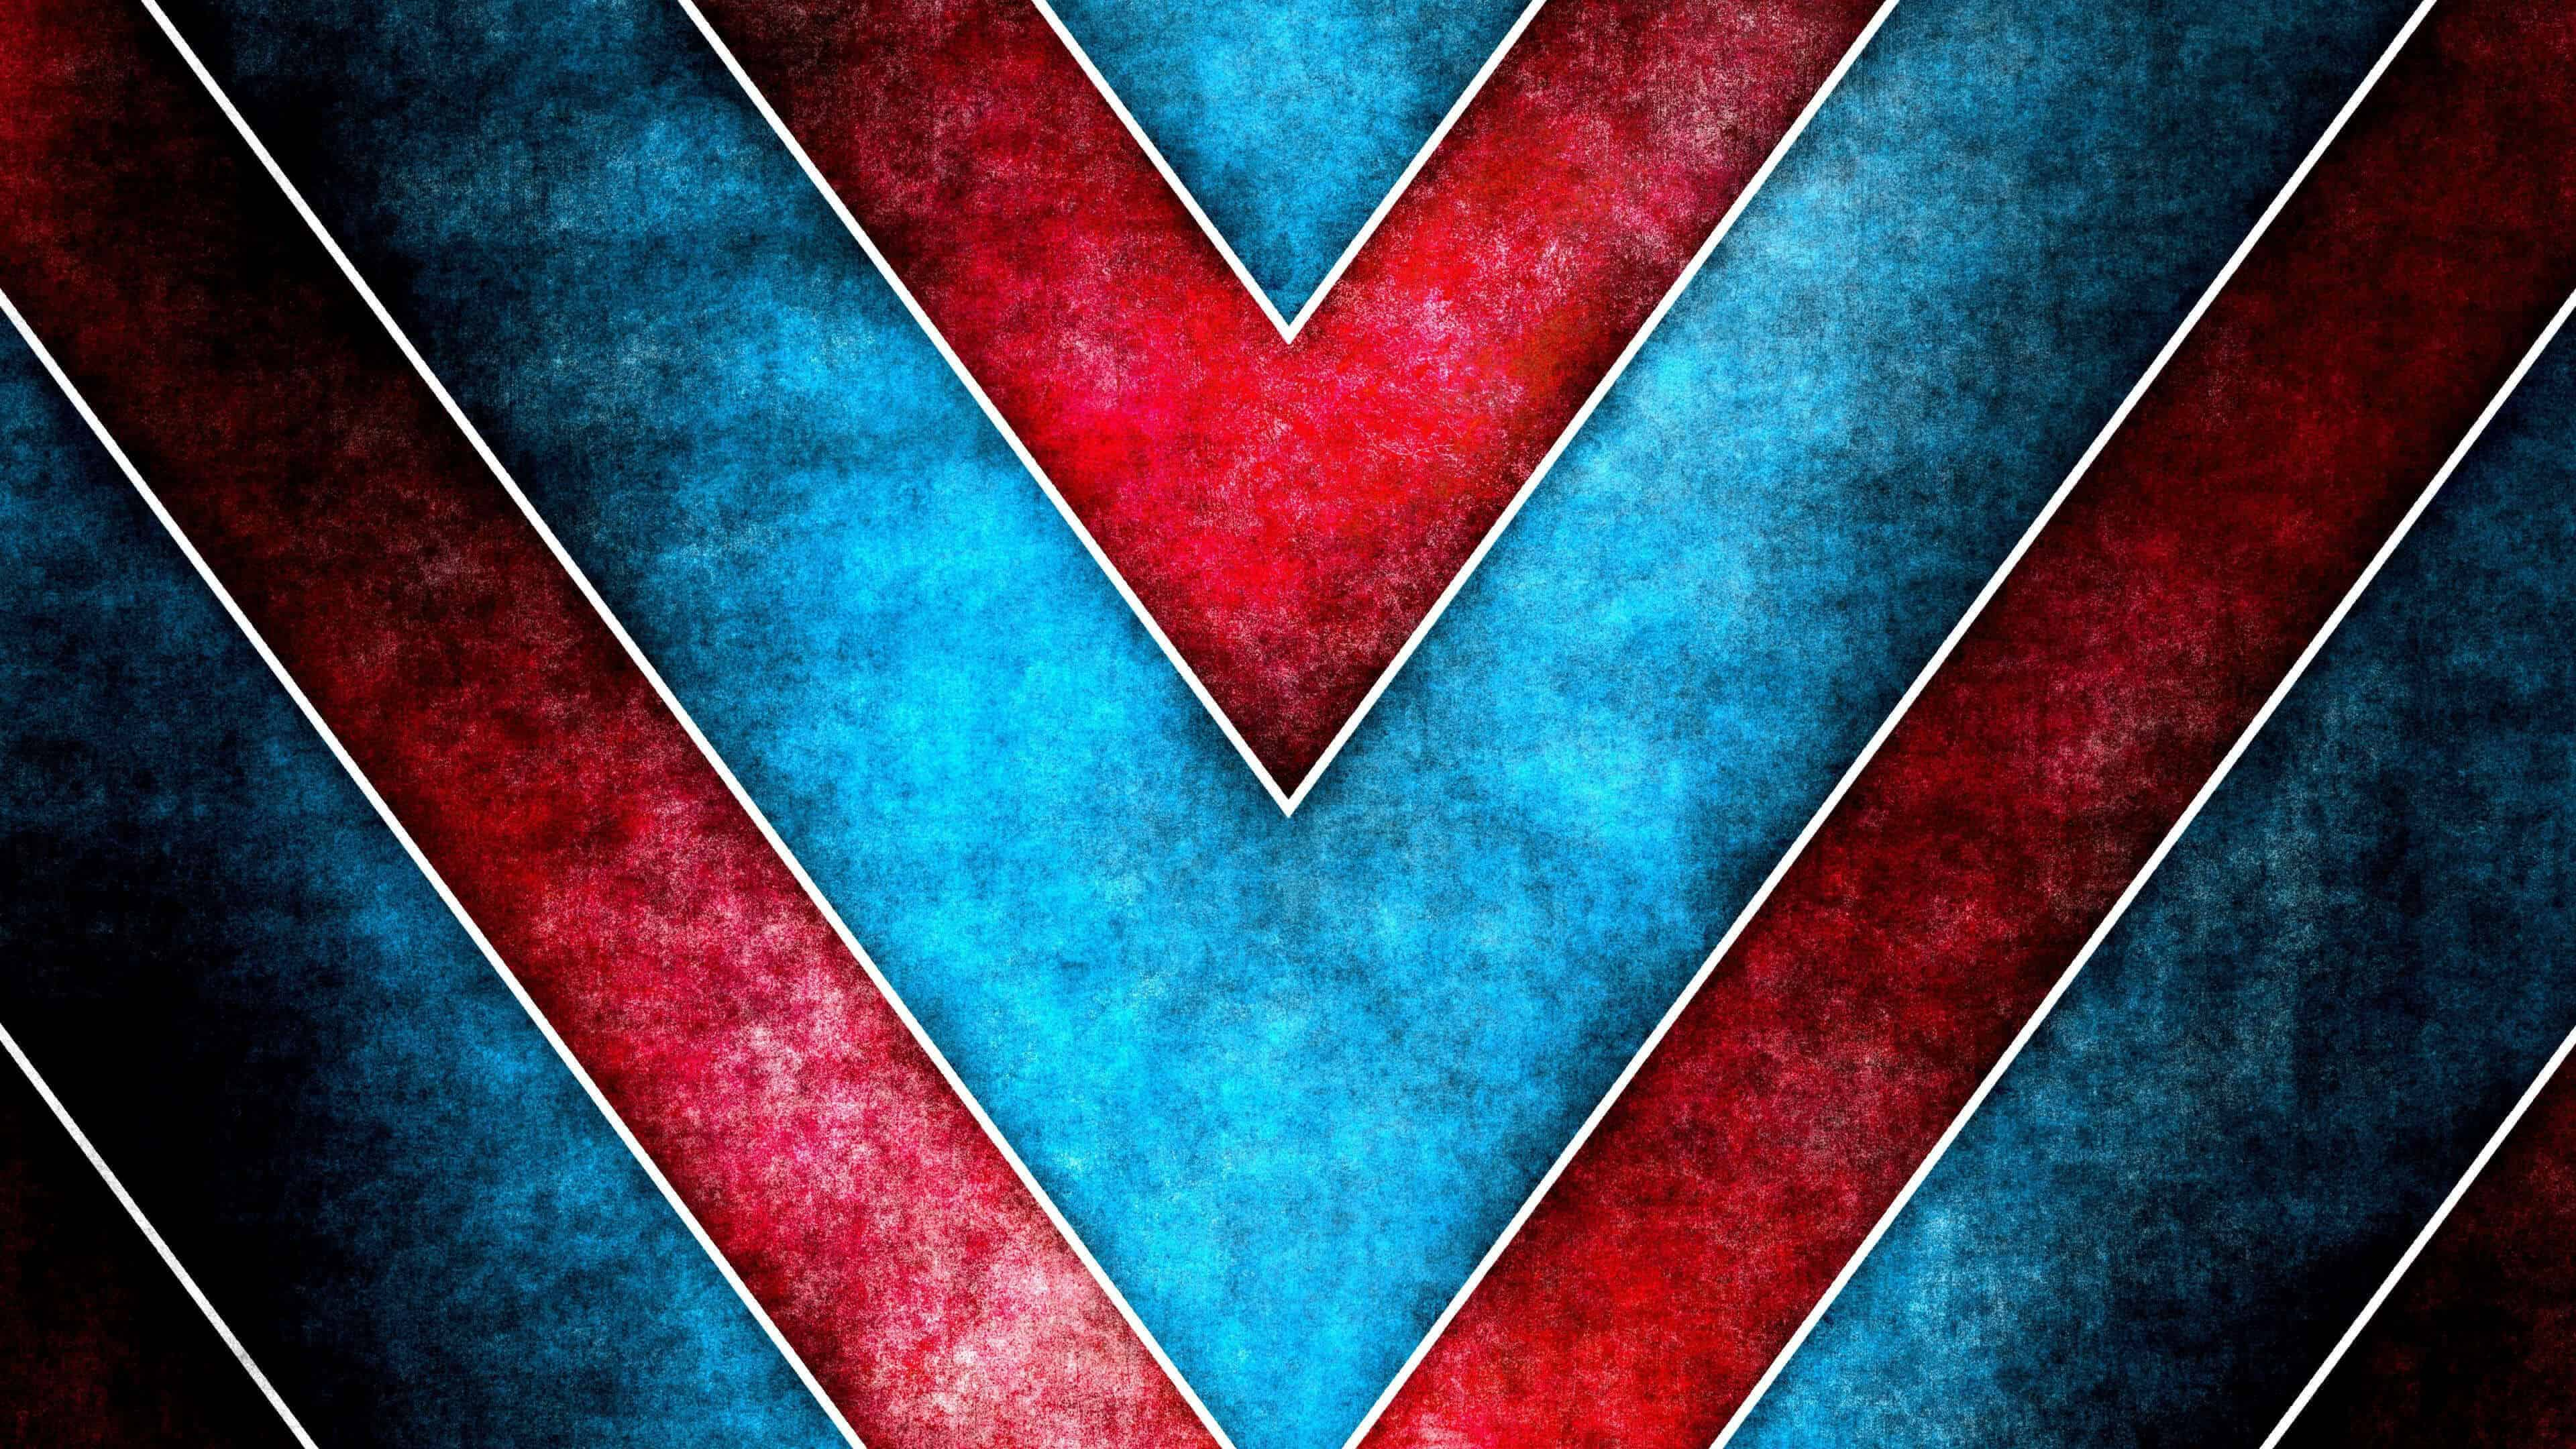 red and blue triangle pattern uhd 4k wallpaper